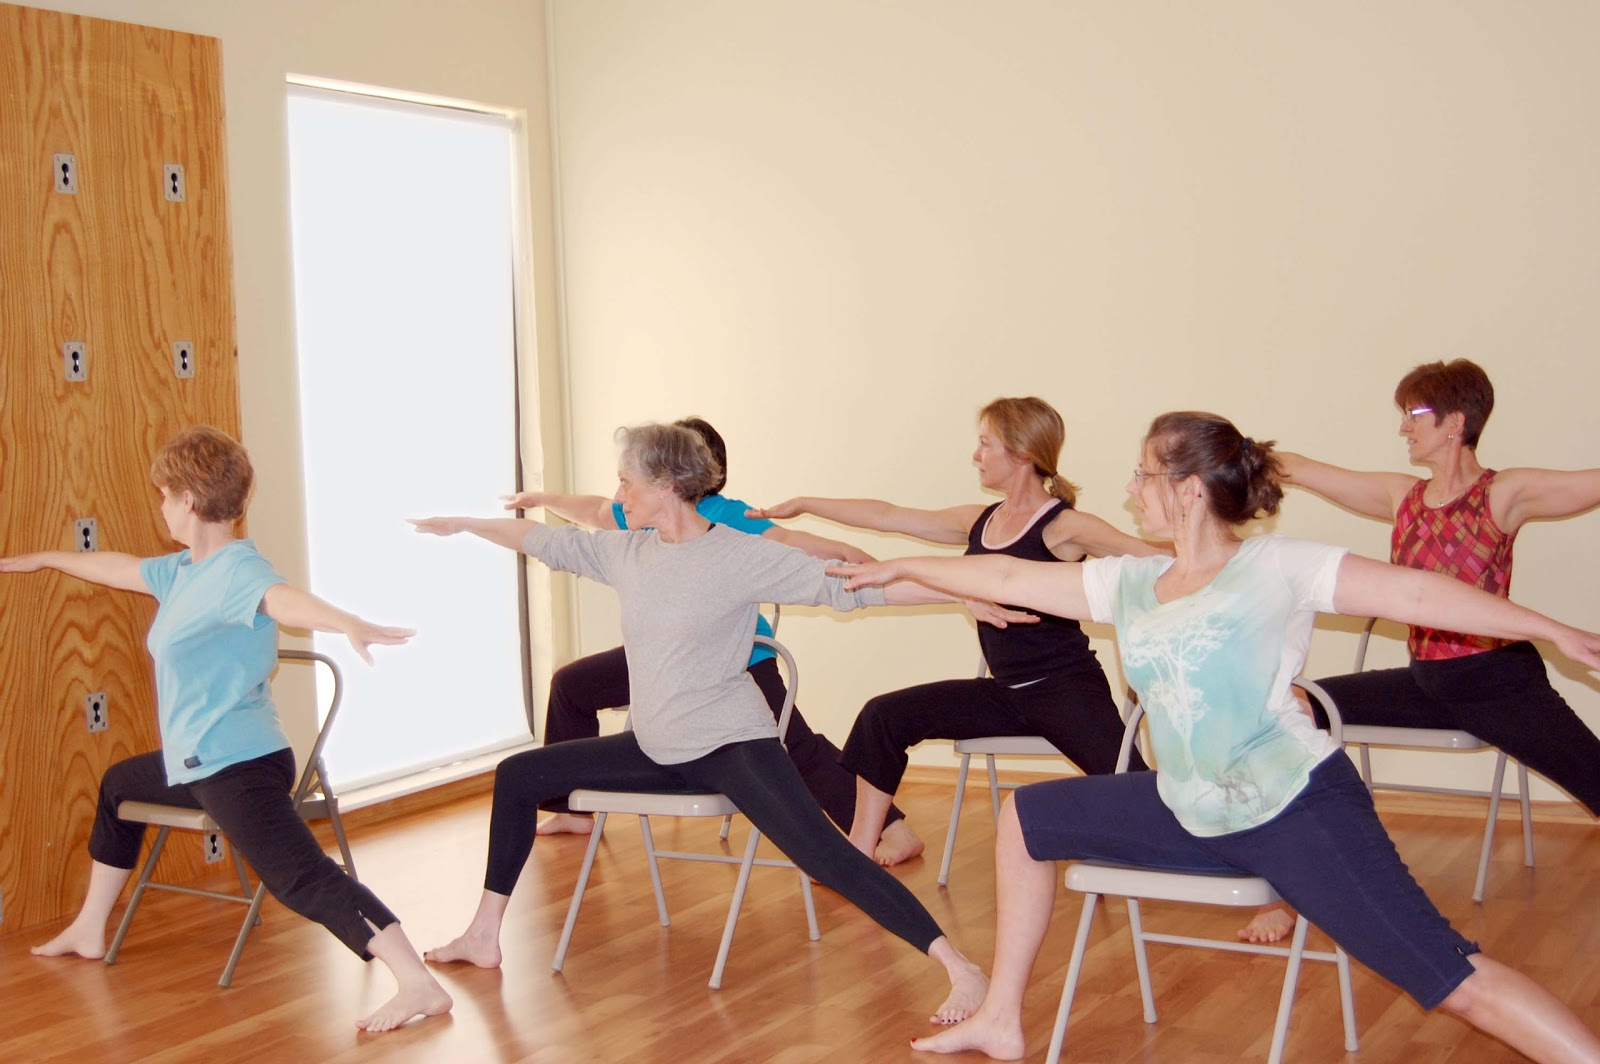 Yoga Chair Exercises For Seniors Office Max Desk Mat Revolution Sunday Nov 20th 3 30 P M